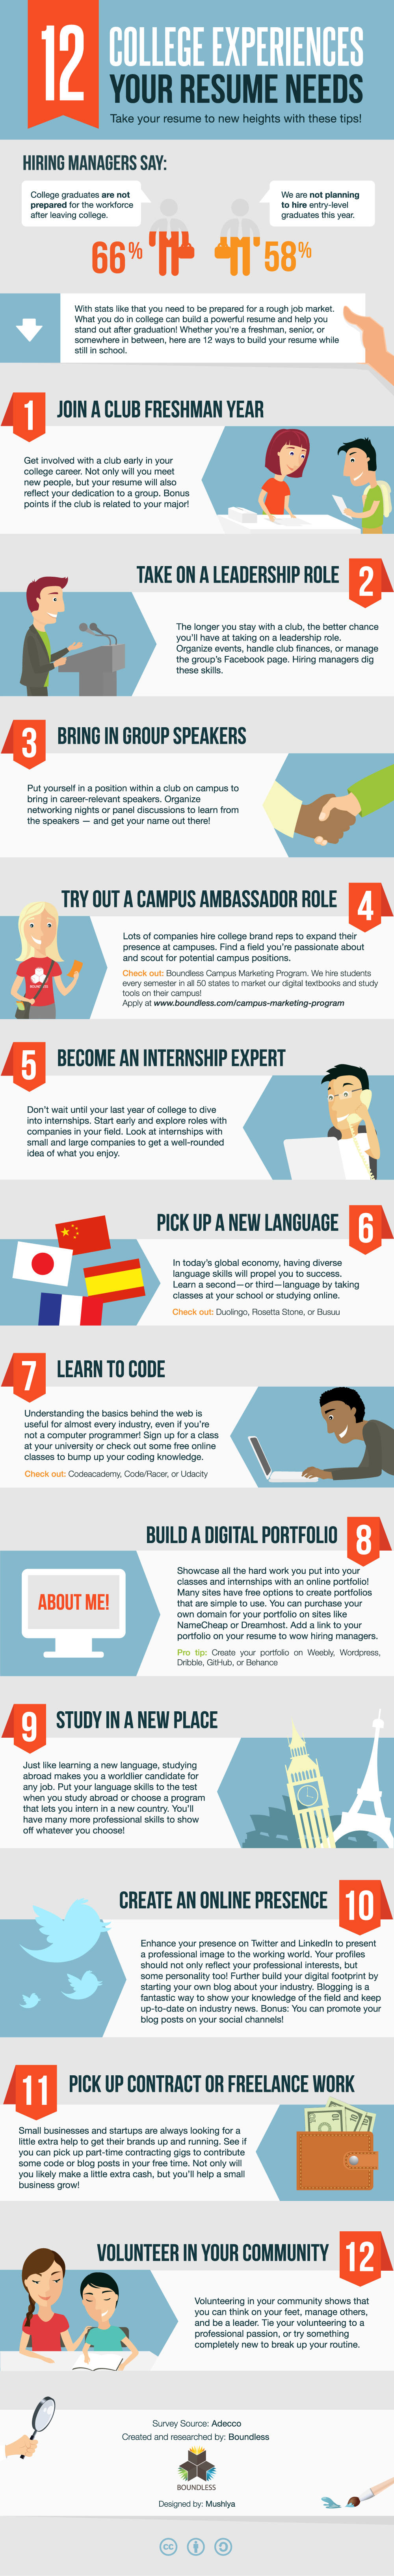 12 college experiences you need to have on your resume infographic college and infographic